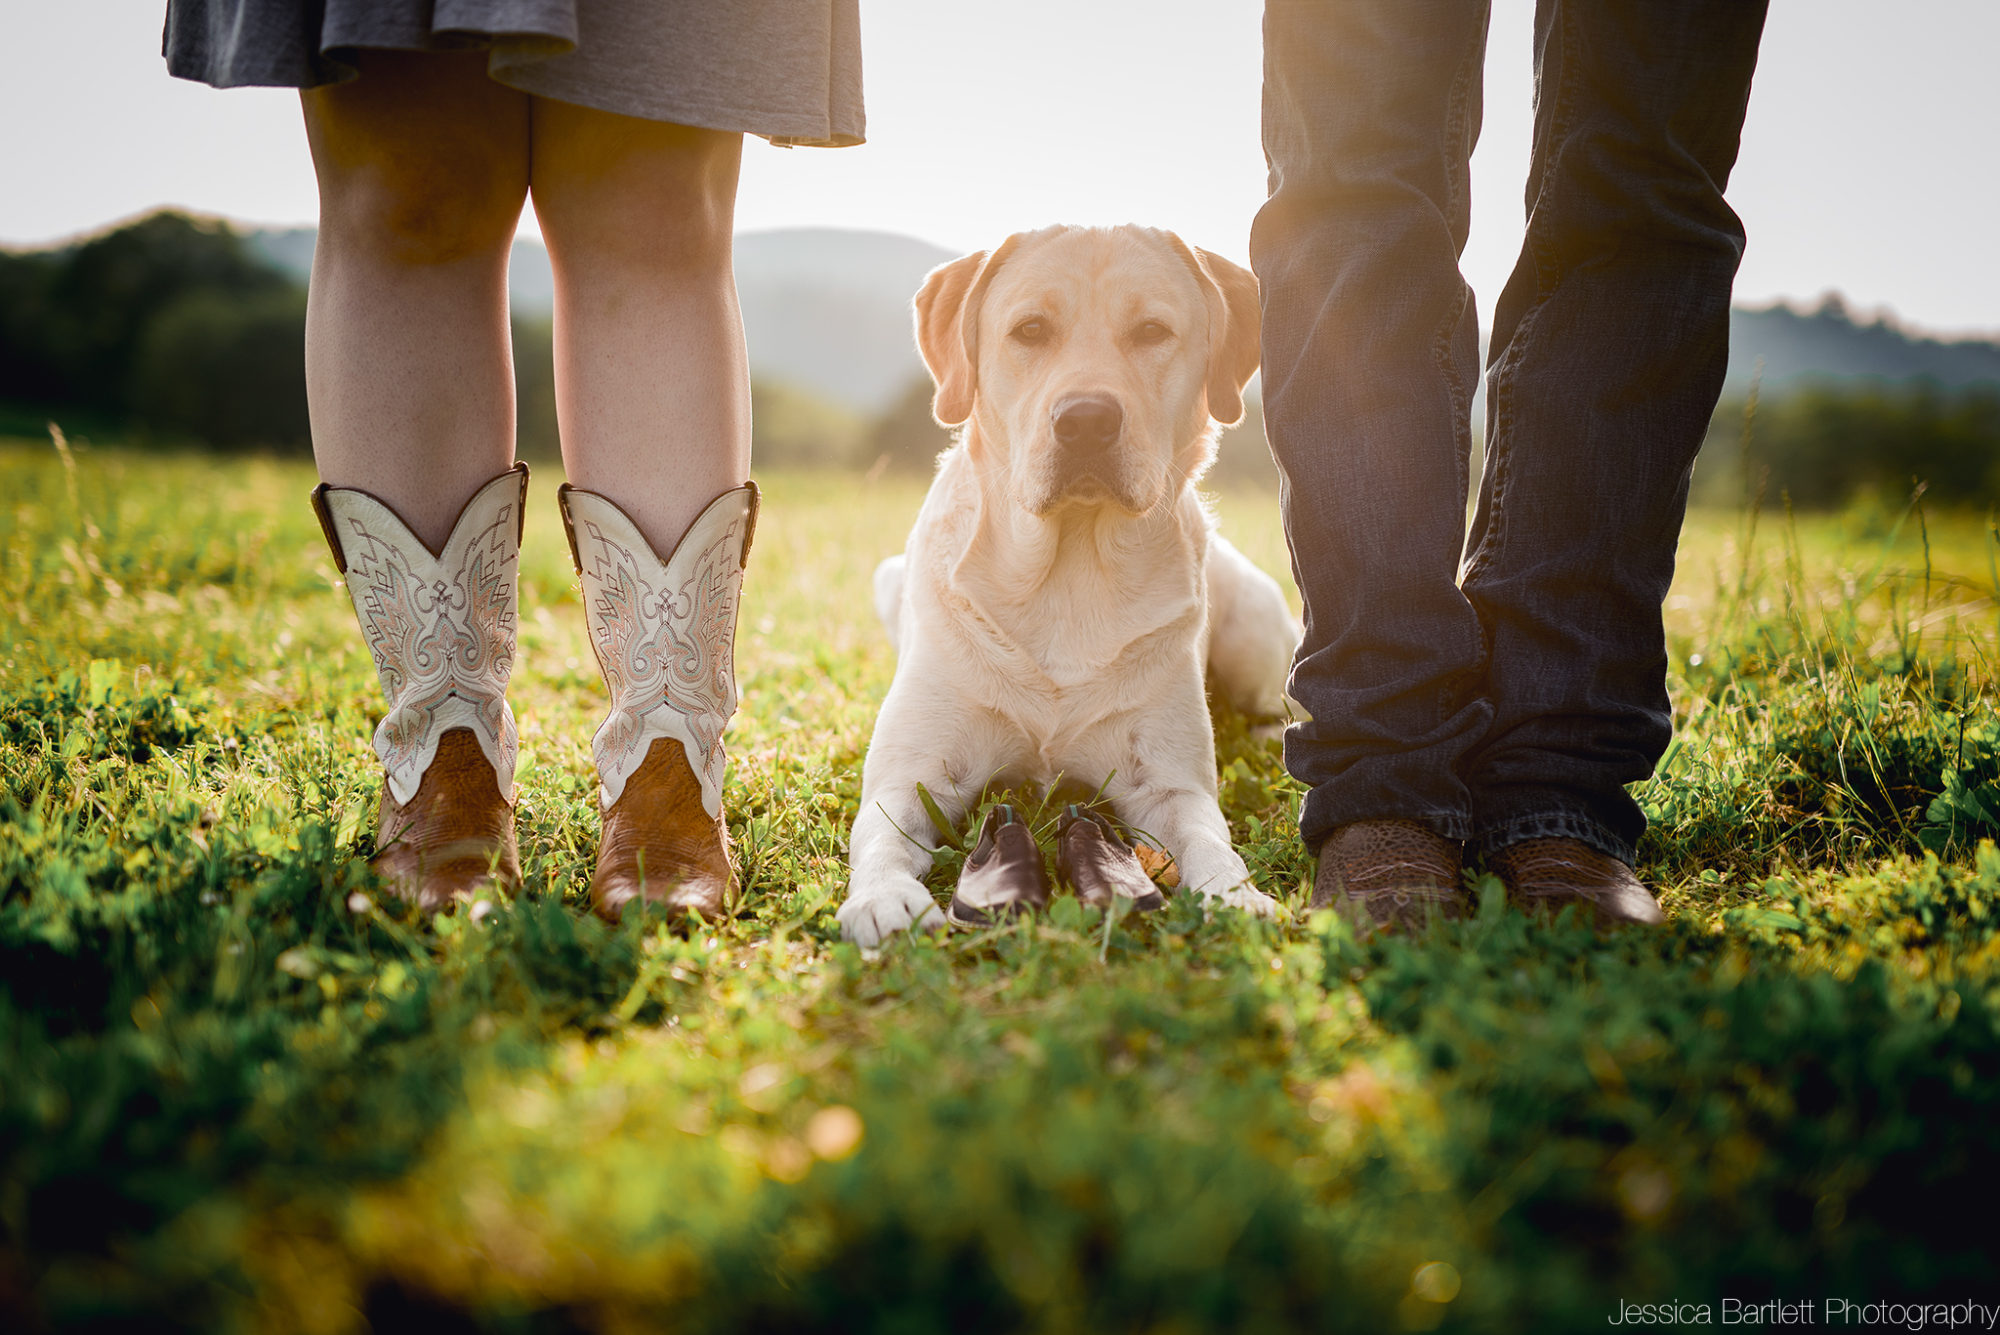 Jessica Bartlett Photography | Mommy&Me Minis: Dog Edition